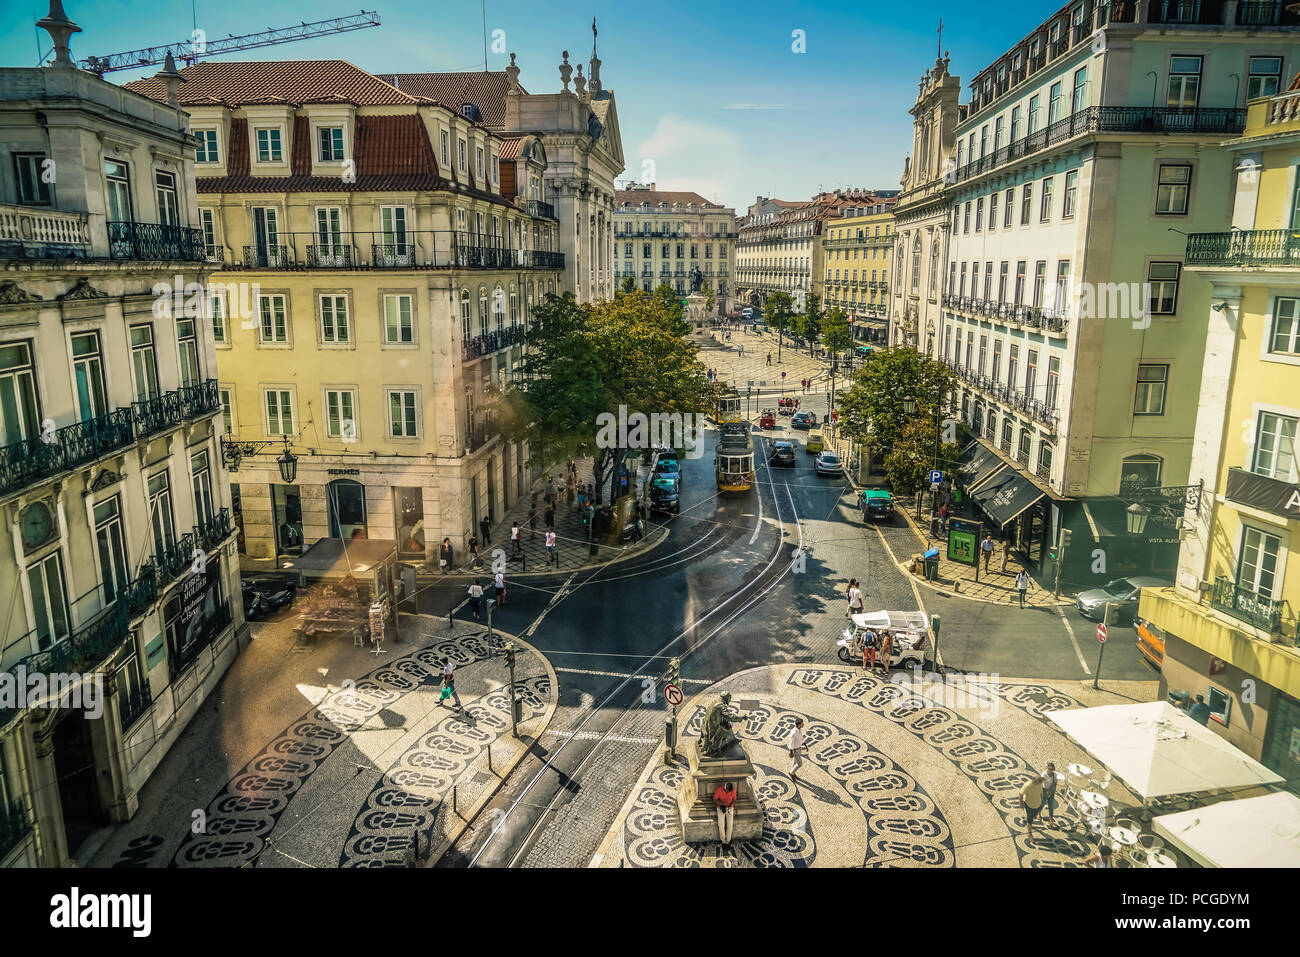 Lisbon. Chiado with Praca de Camoes in the background. - Stock Image